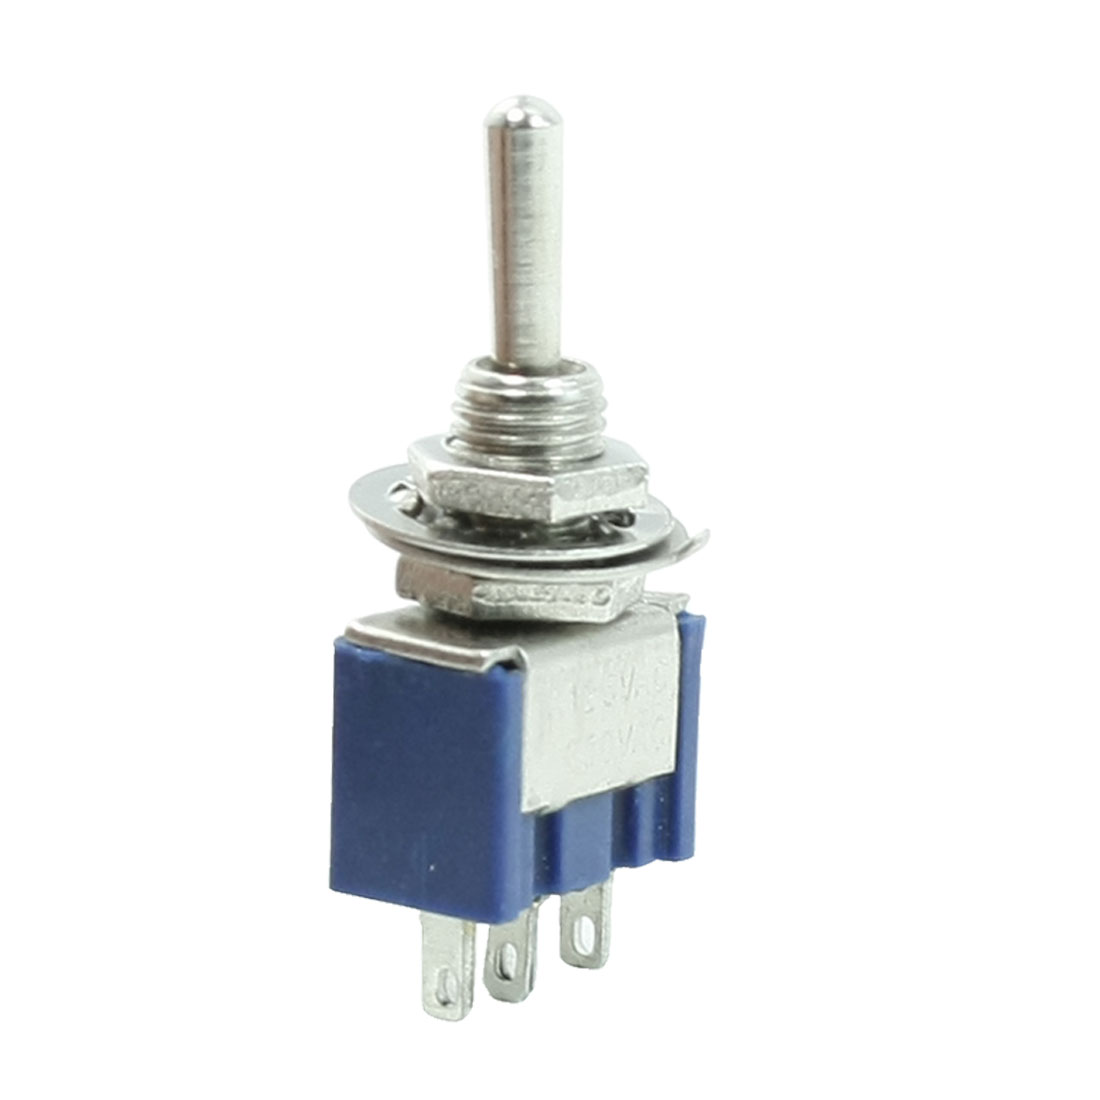 6A/125VAC 3A/250VAC 3-Pin SPST On/Off/On 3 Position Latching Mini Toggle Switch